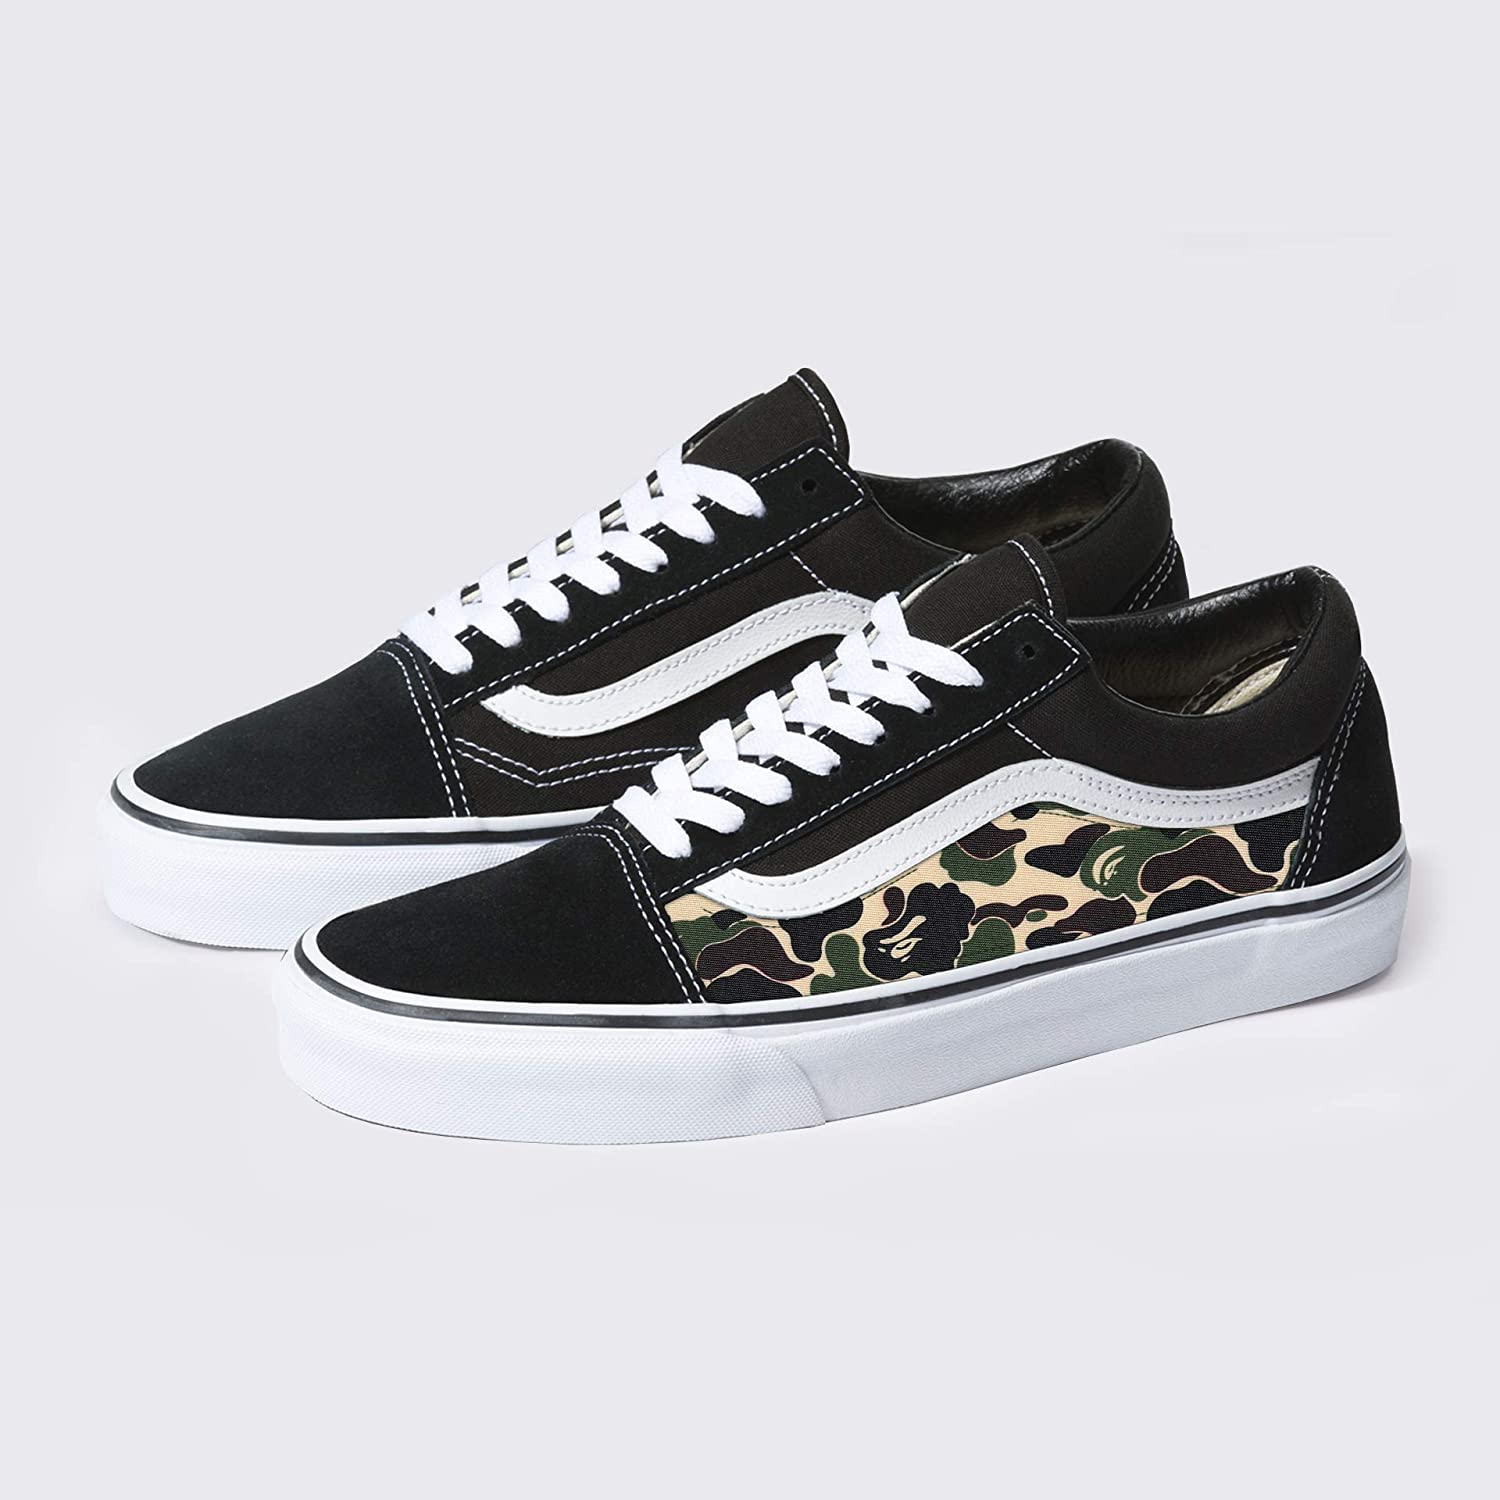 f7b8f768258 Amazon.com  Vans Old Skool x Bape Camo Custom Handmade Uni-Sex Shoes By  Patch Collection  Handmade